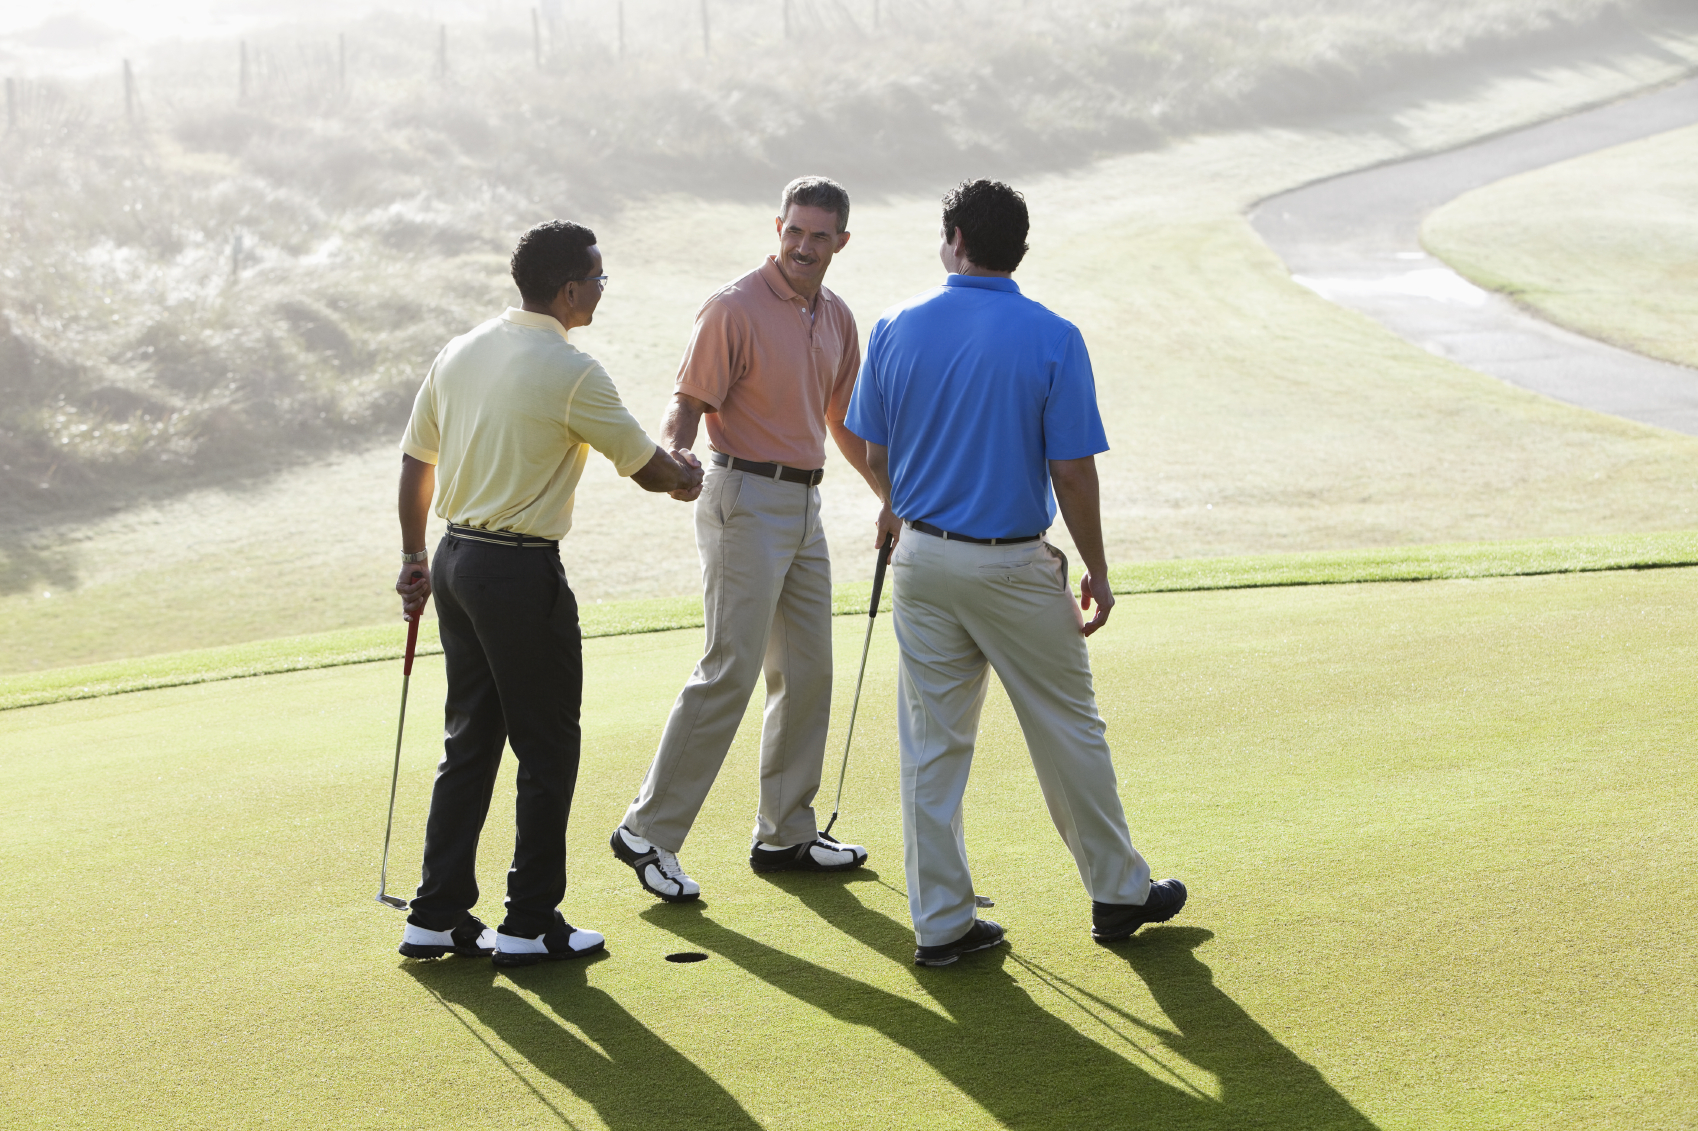 The Relationship Between Golf and Business: More To It Than You Think